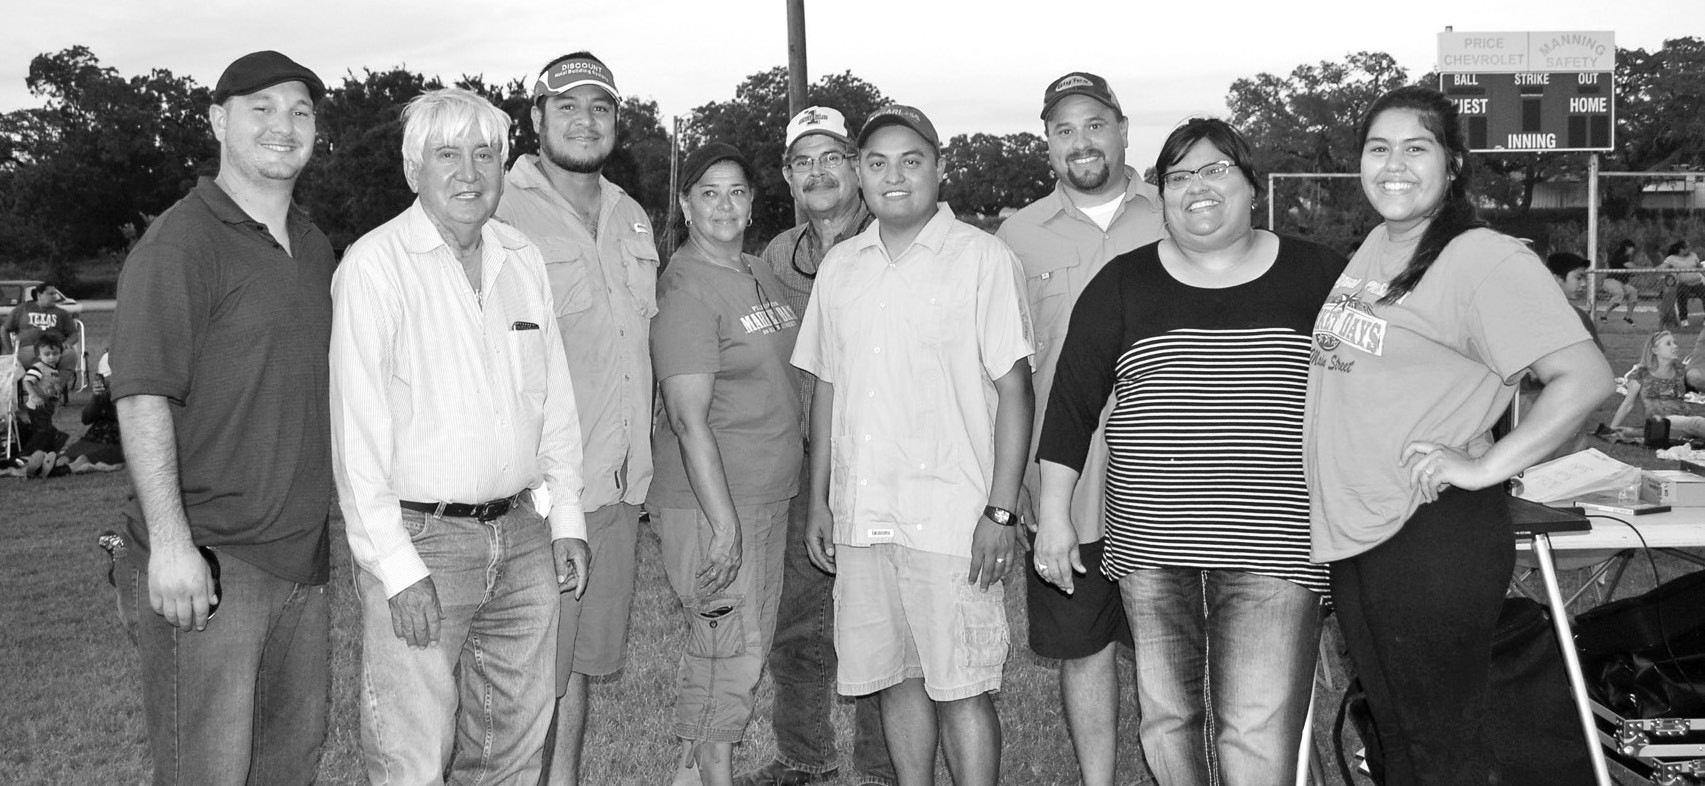 "The Pleasanton Hispanic Chamber of Commerce was pleased with their first Cinema in the Park event held last Saturday. About 150 turned out to watch ""Despicable Me 2"" at the Atascosa Riverpark baseball field. Helping to plan this and future events are, left to right, Gilbert Salas, Joe Trevino, Roel Mares, Carolyn Moreno, Hector Moreno,DJ Herrera, David Douglas, Mary Ortiz and Vanessa Ortiz."